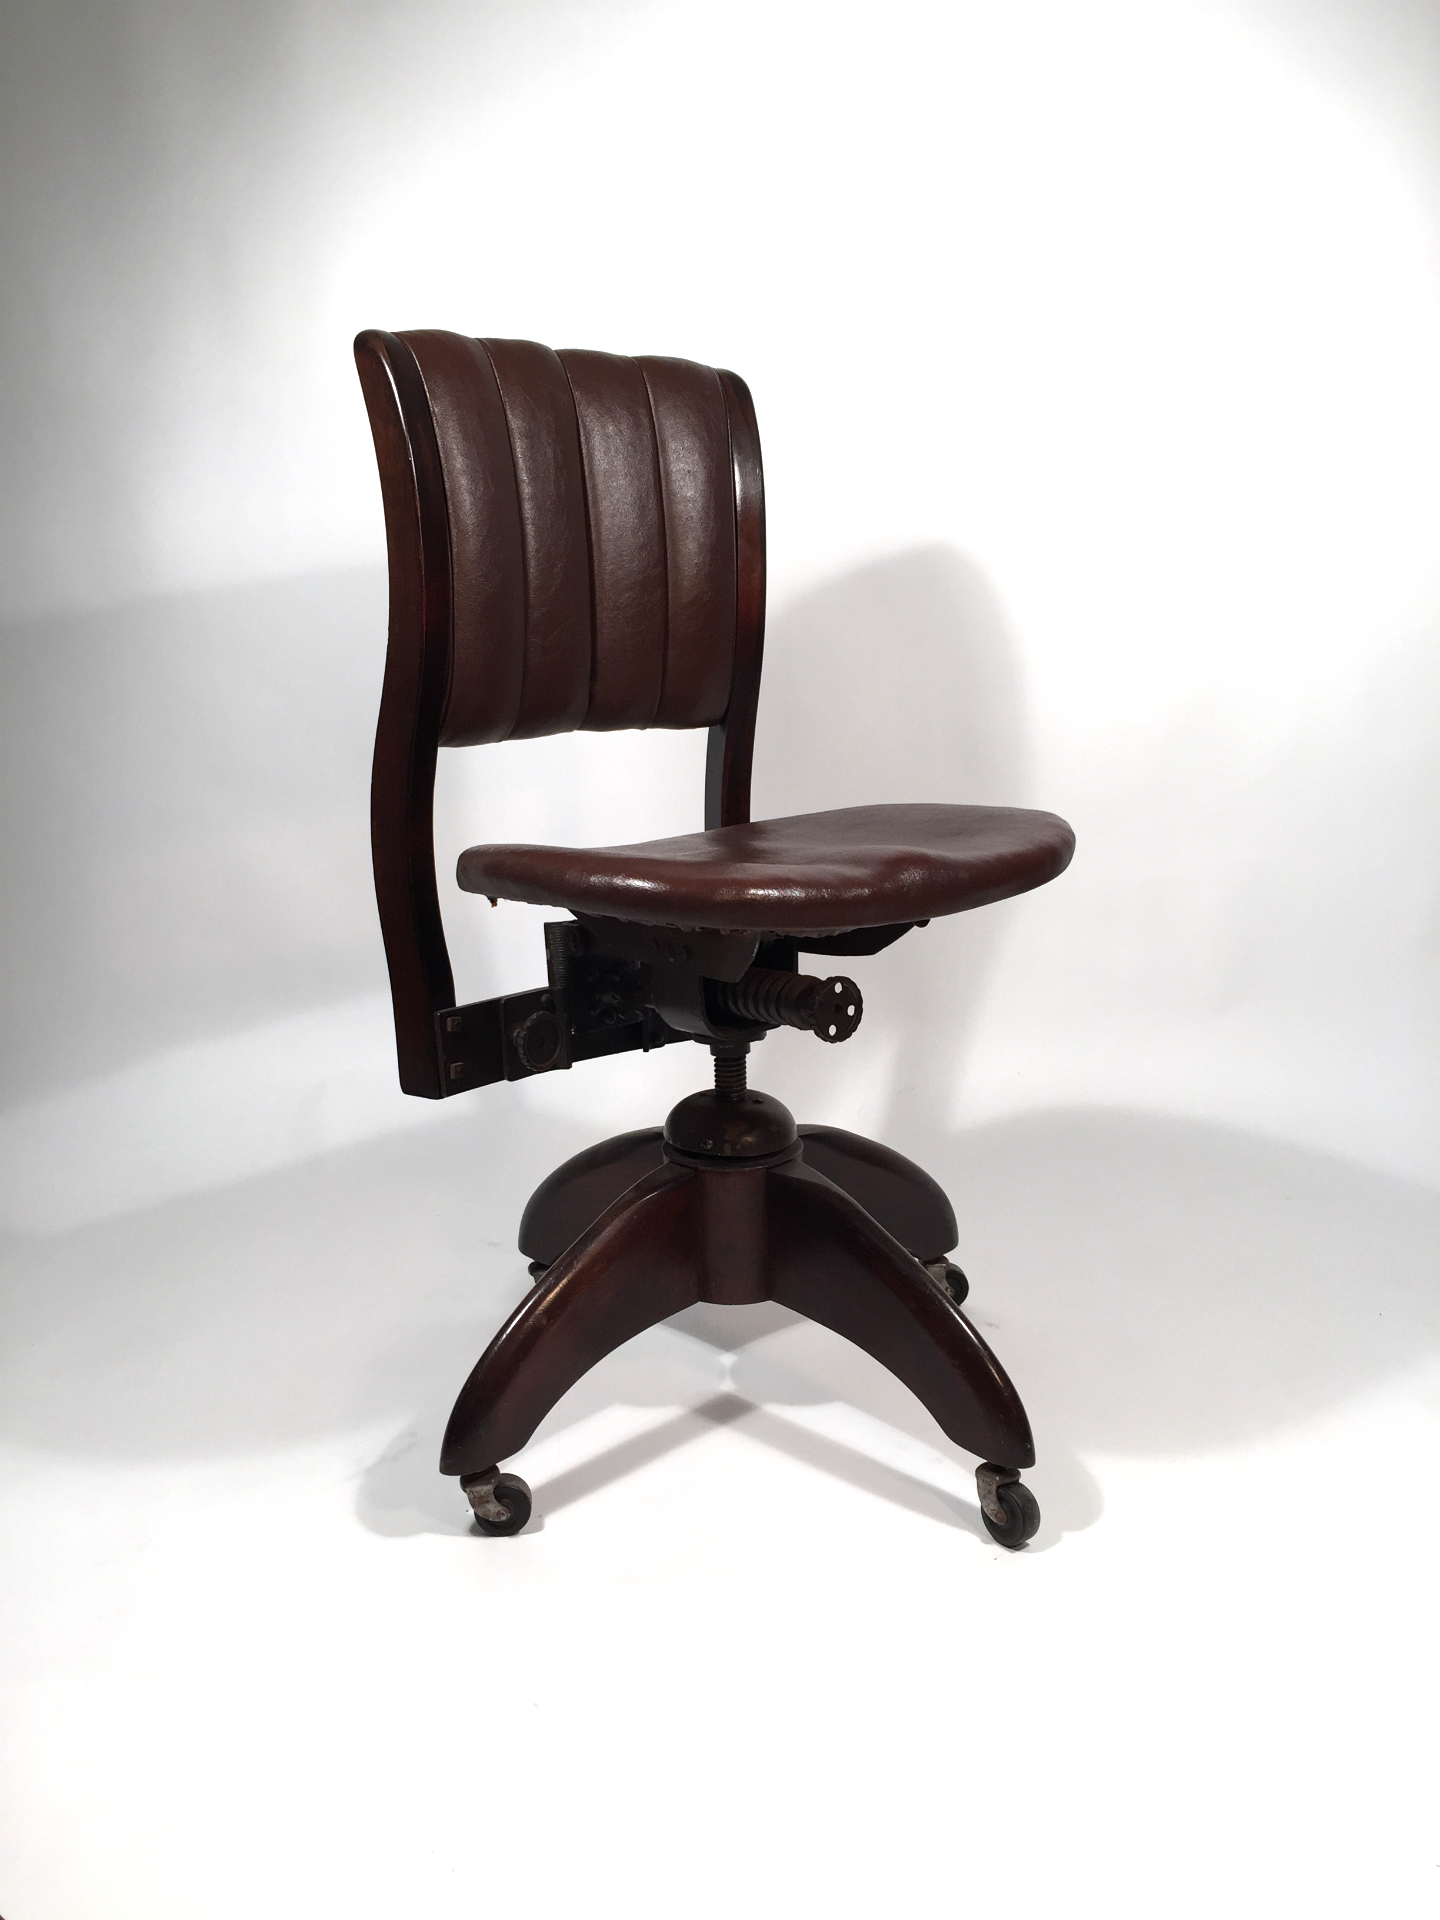 Vintage Office Chair, c. 1930